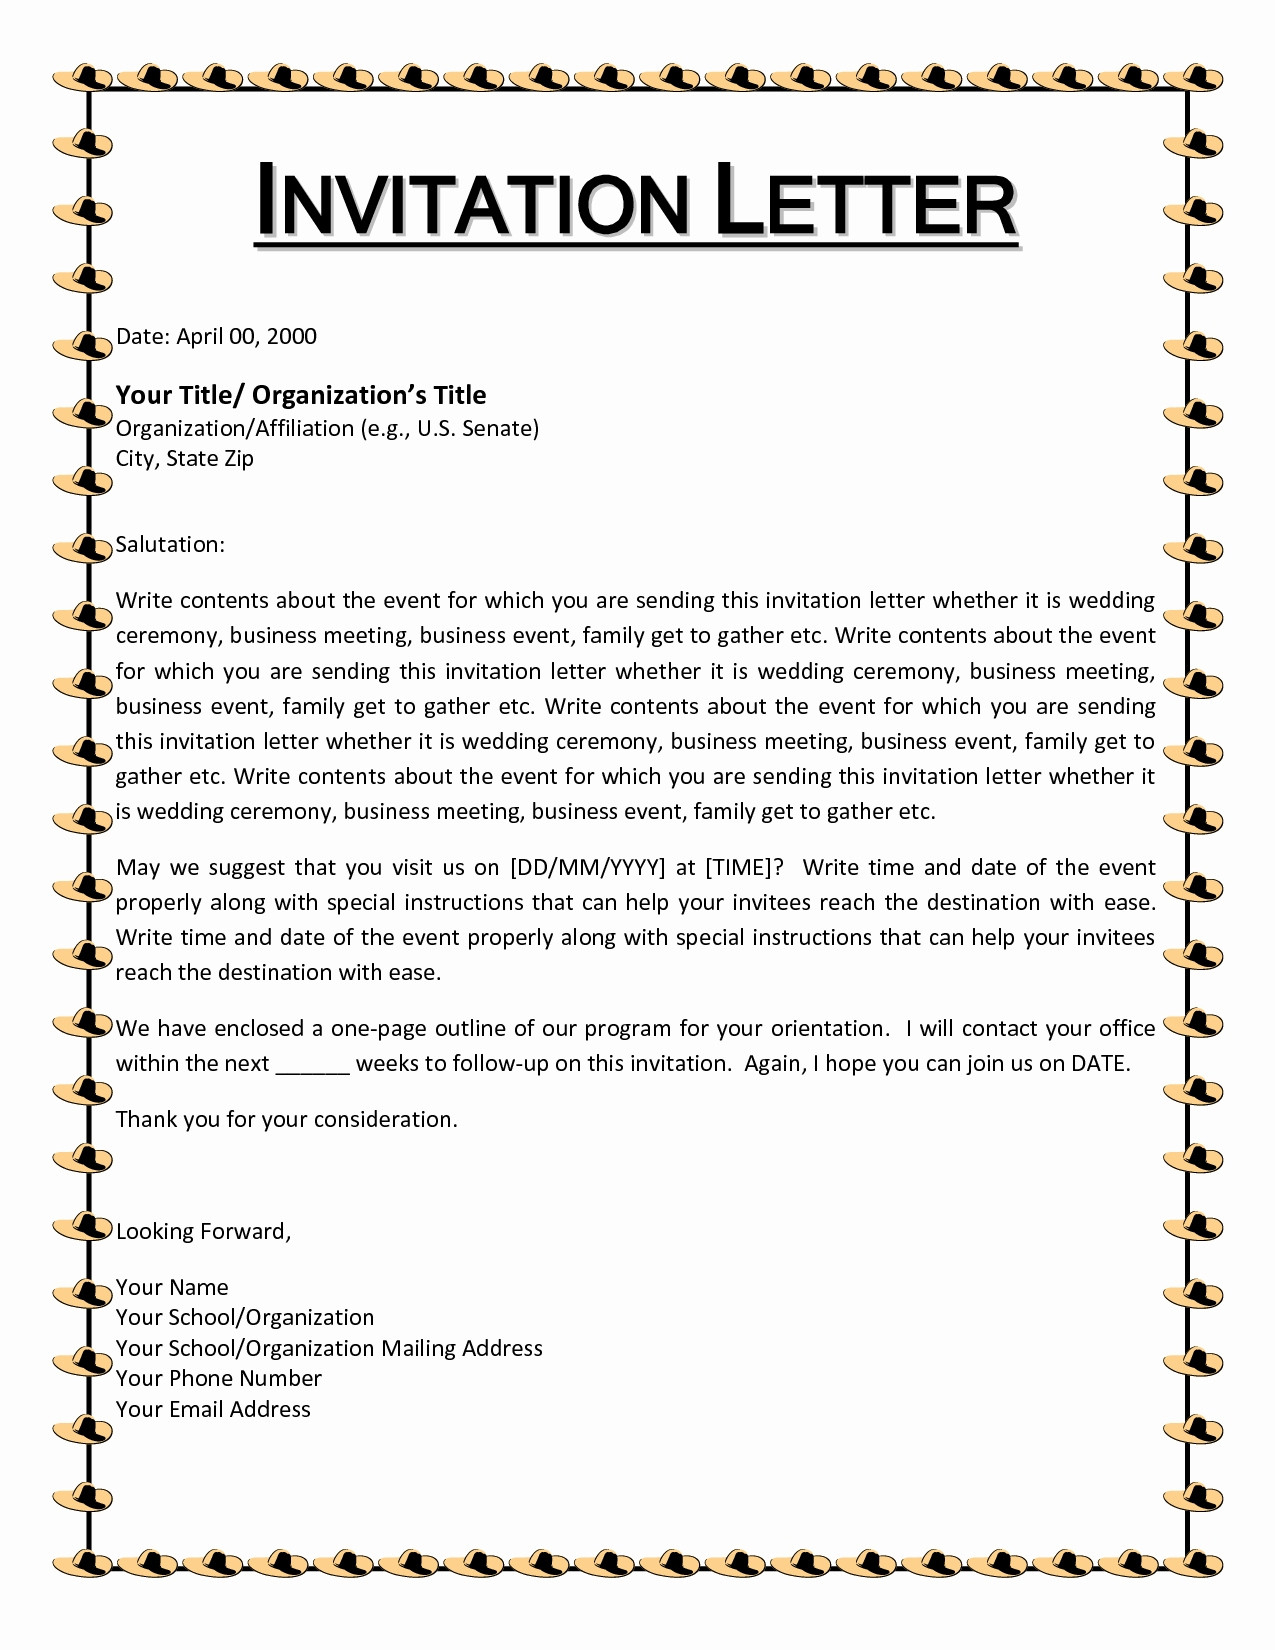 Christmas Party Letter Template - Football Invitation Template Awesome Invitation Letter Christmas